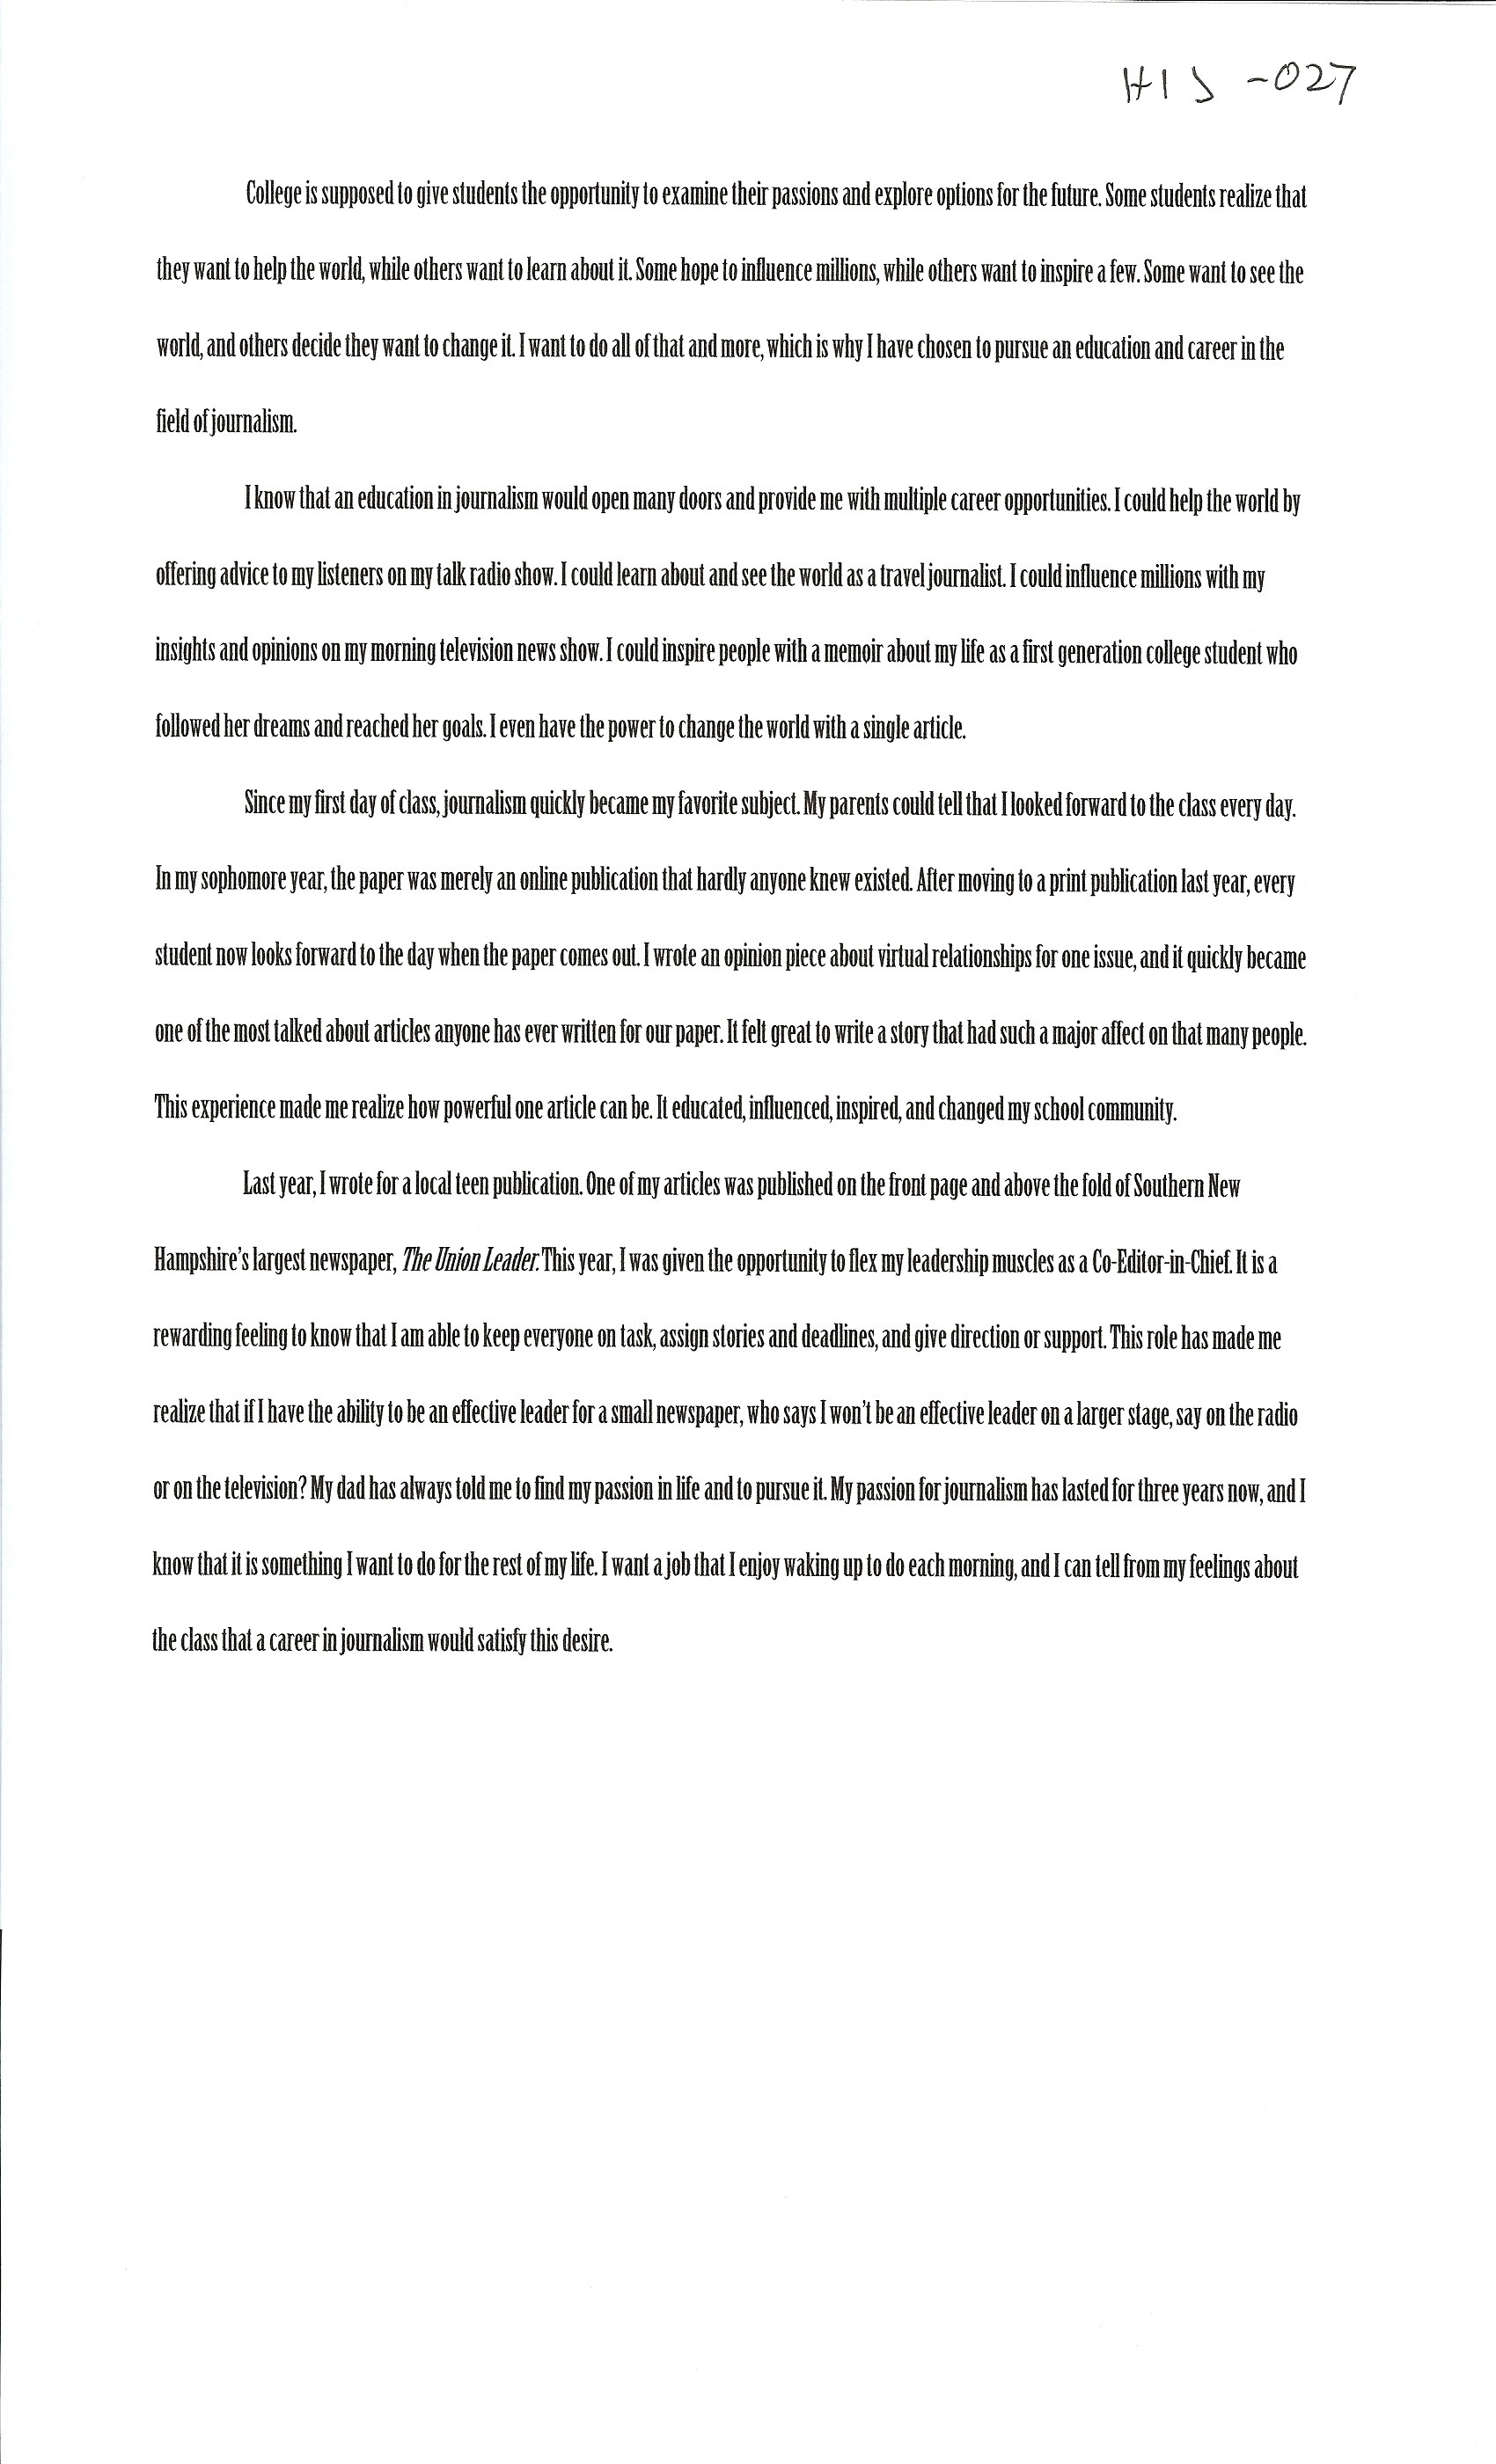 026 Alexa Serrecchia Essay Example Scholarships With Singular Essays Without Writing For High School Juniors Class Of 2020 No 2019 Full